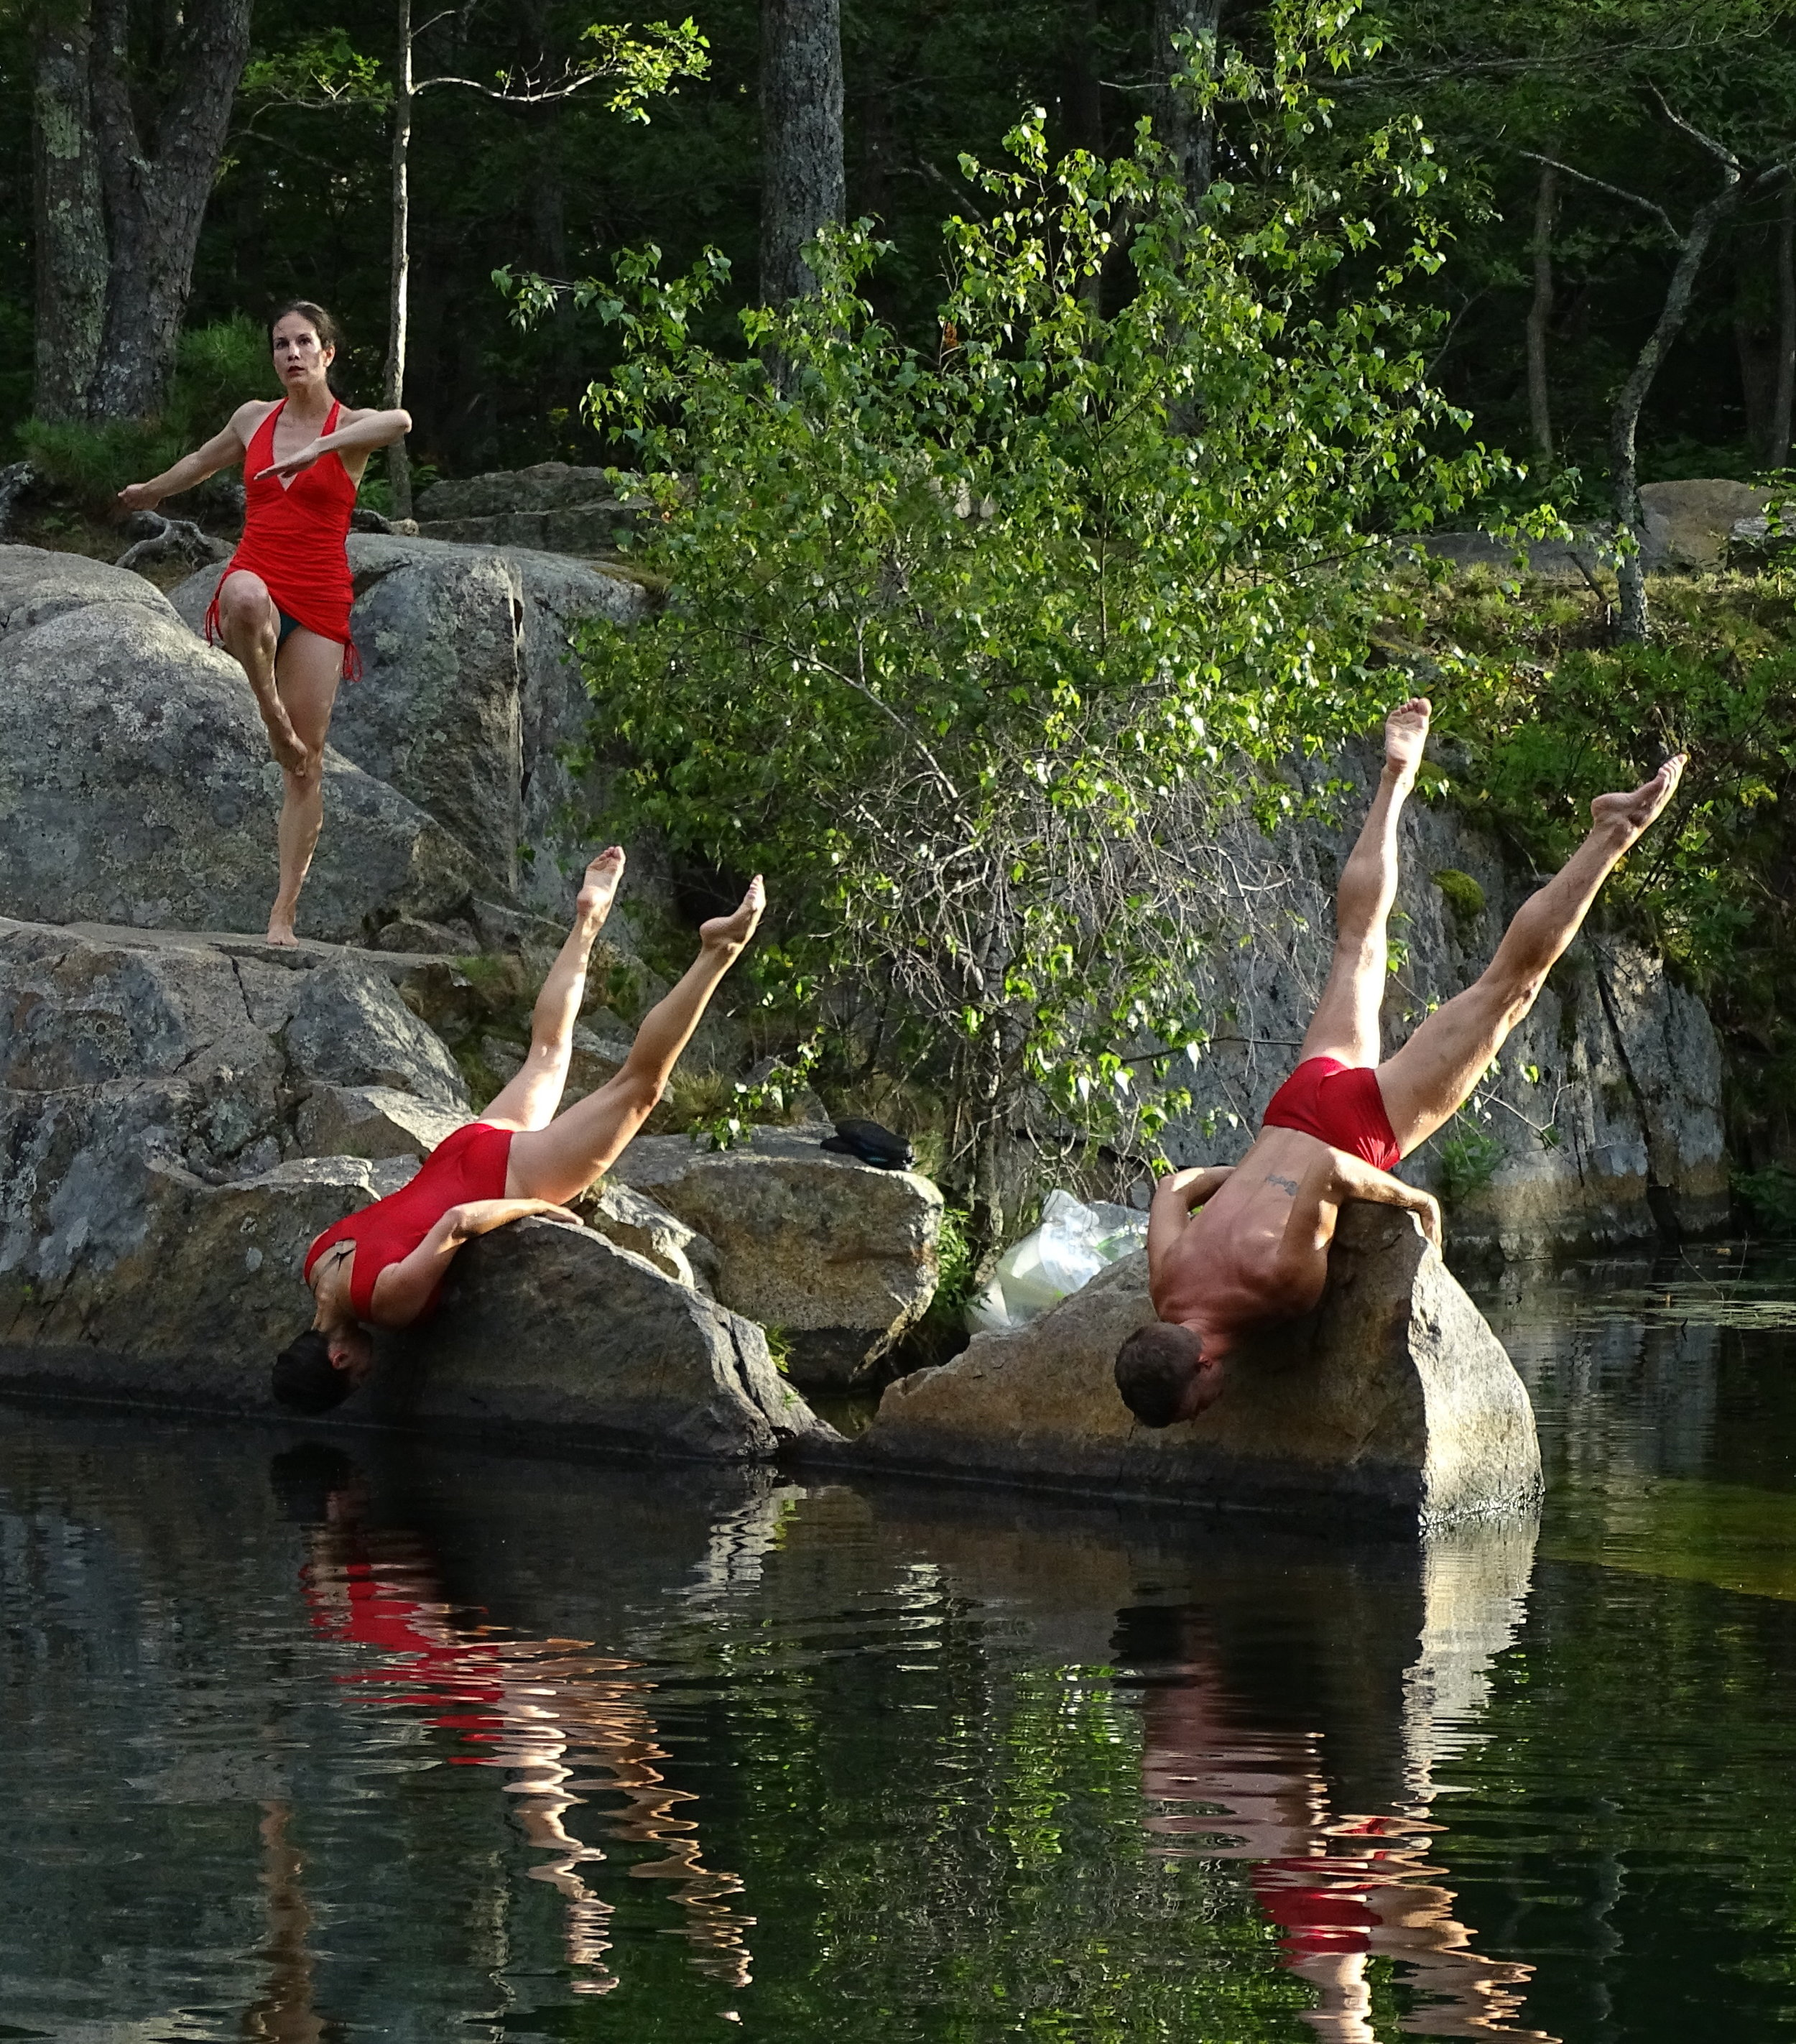 Quarry Dance, Dusan Tynek's annual site-specific performance with his DTDT troupe.